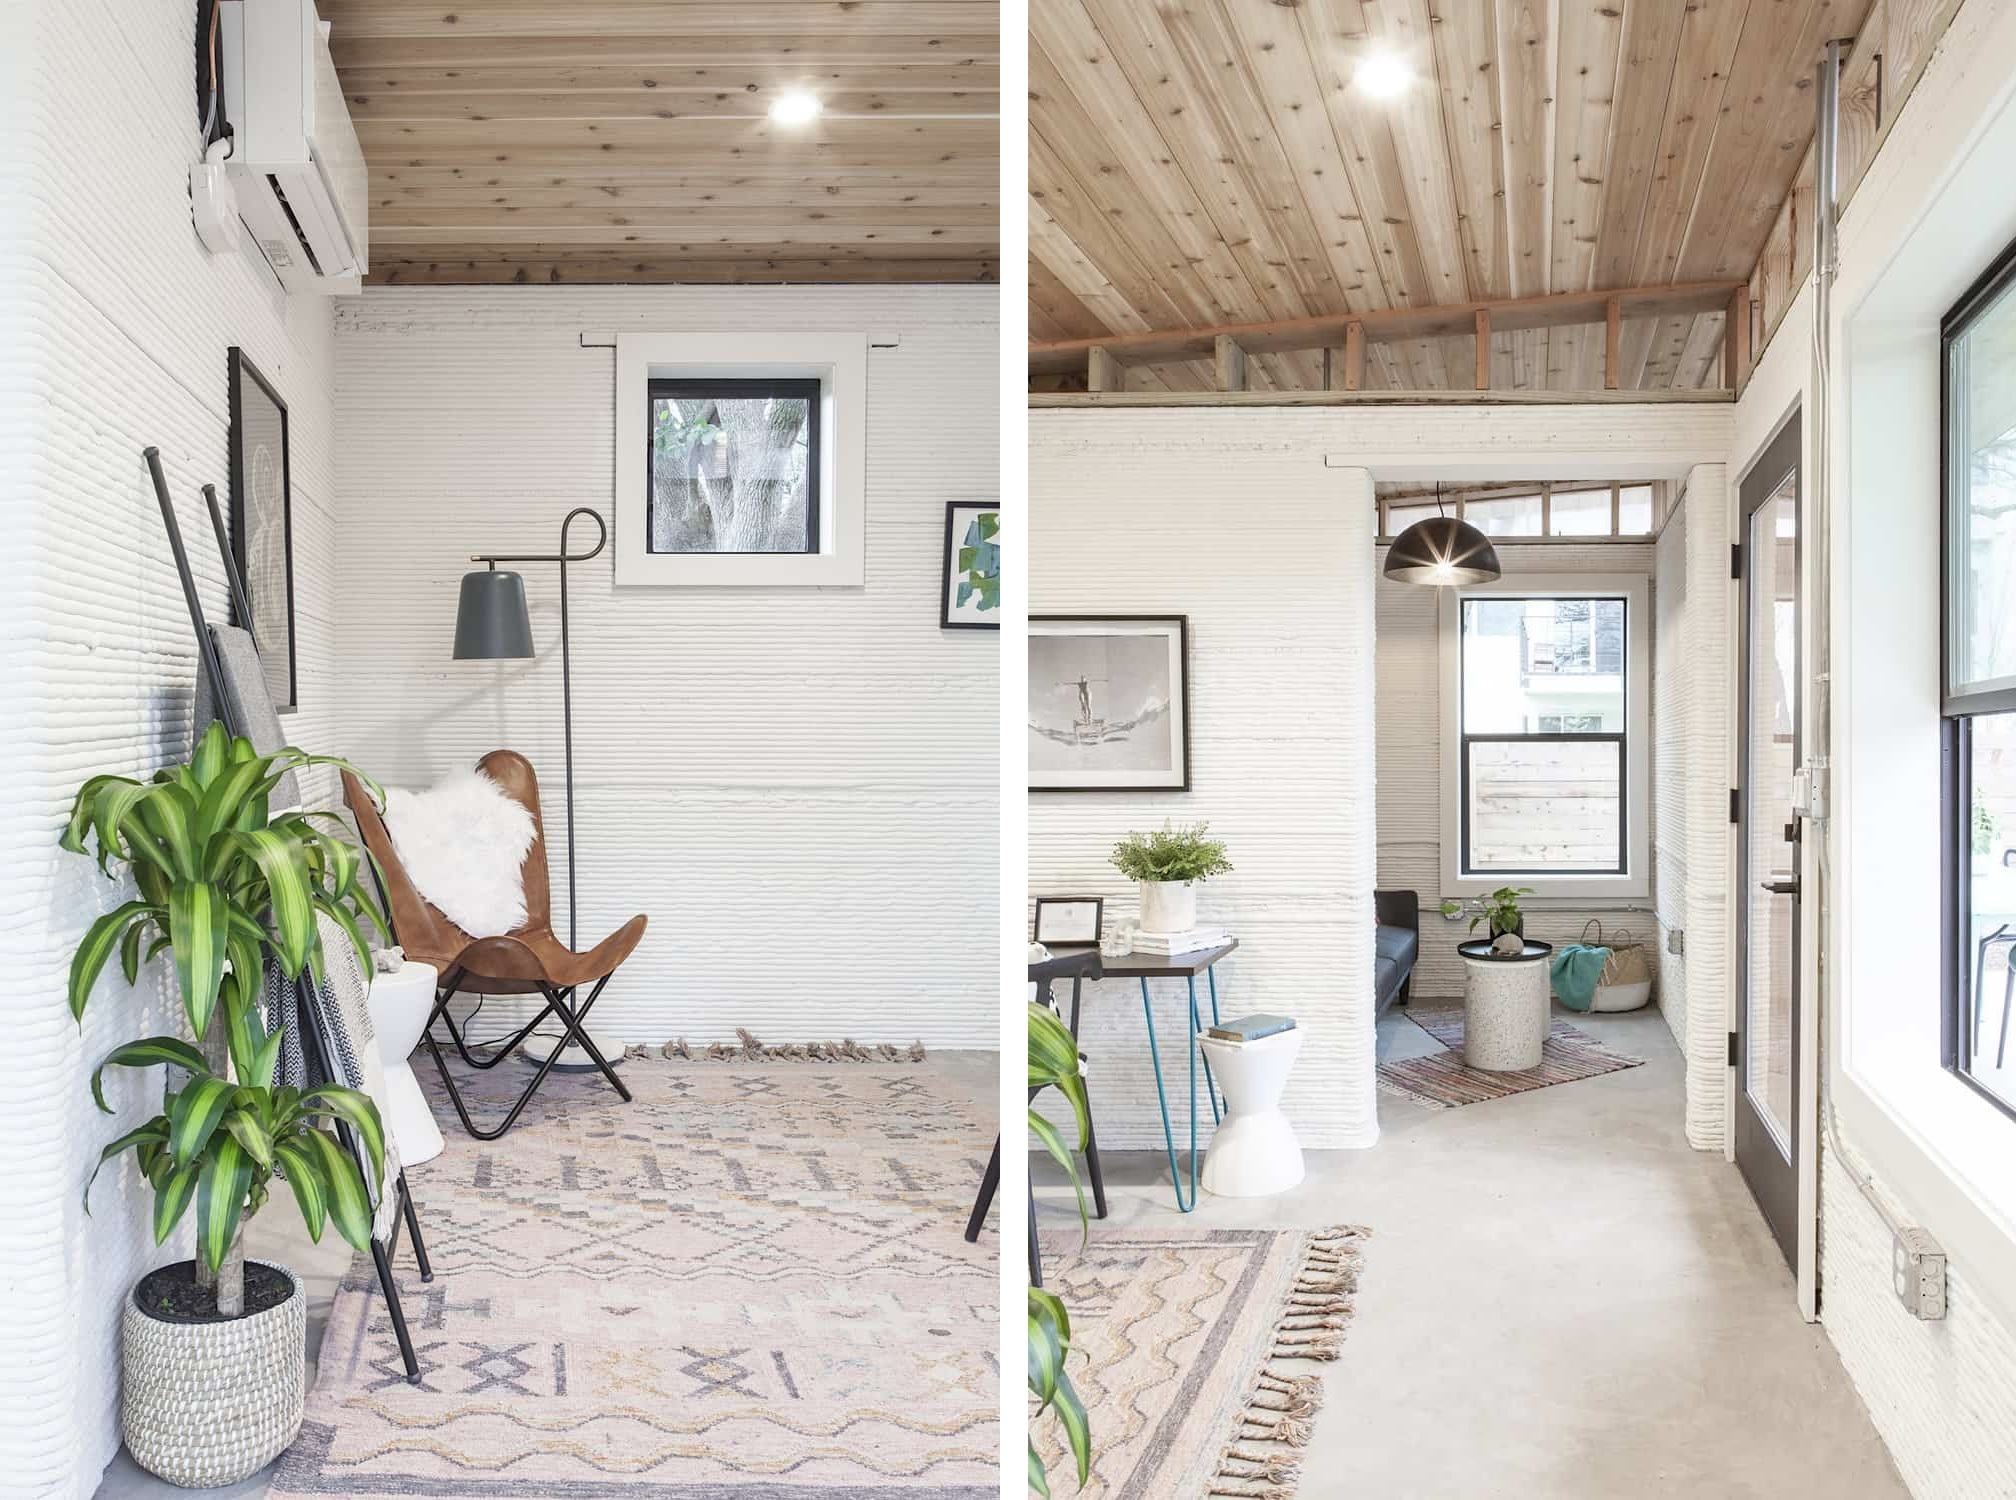 The decor is mid century modern, with boho touches and lots of potted greenery to make the home cozier